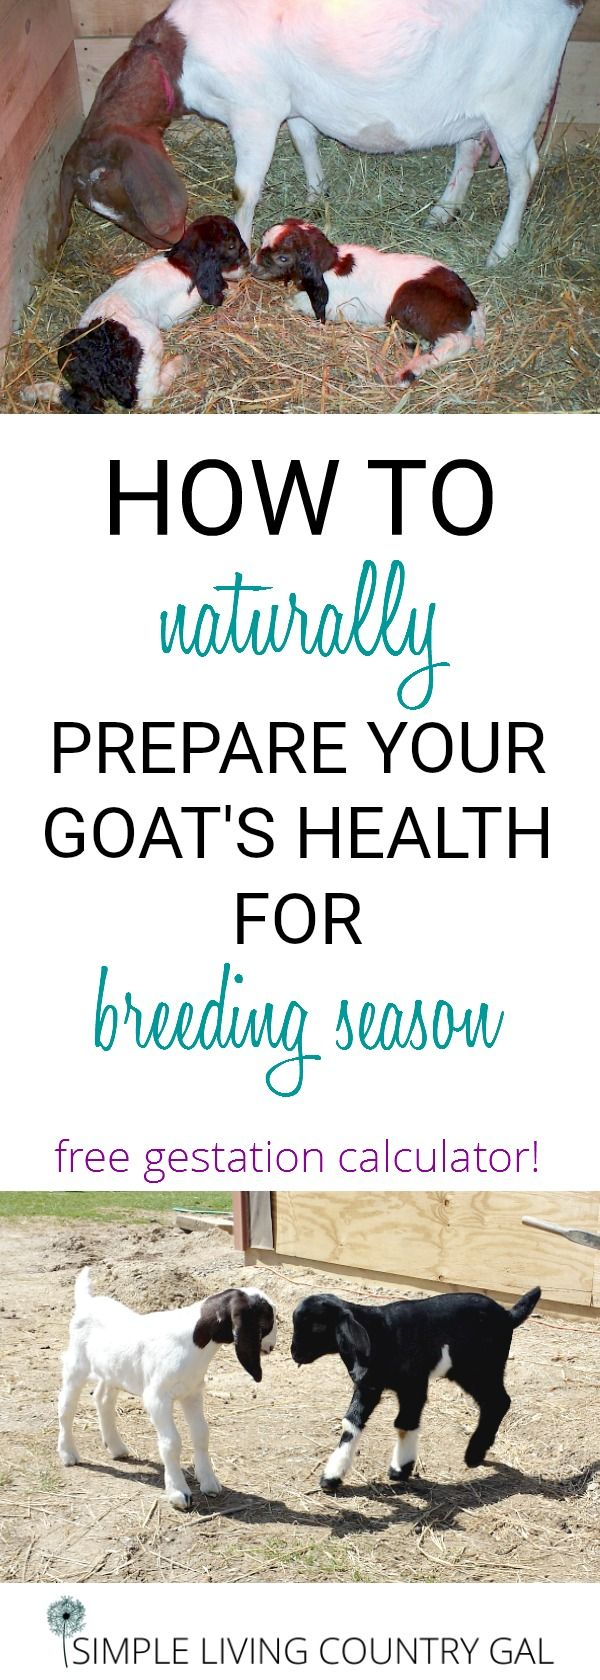 Use these natural tips to make sure your goats are in good health and able to handle the stress of breeding season. Free Gestation Calculator!  via @SLcountrygal